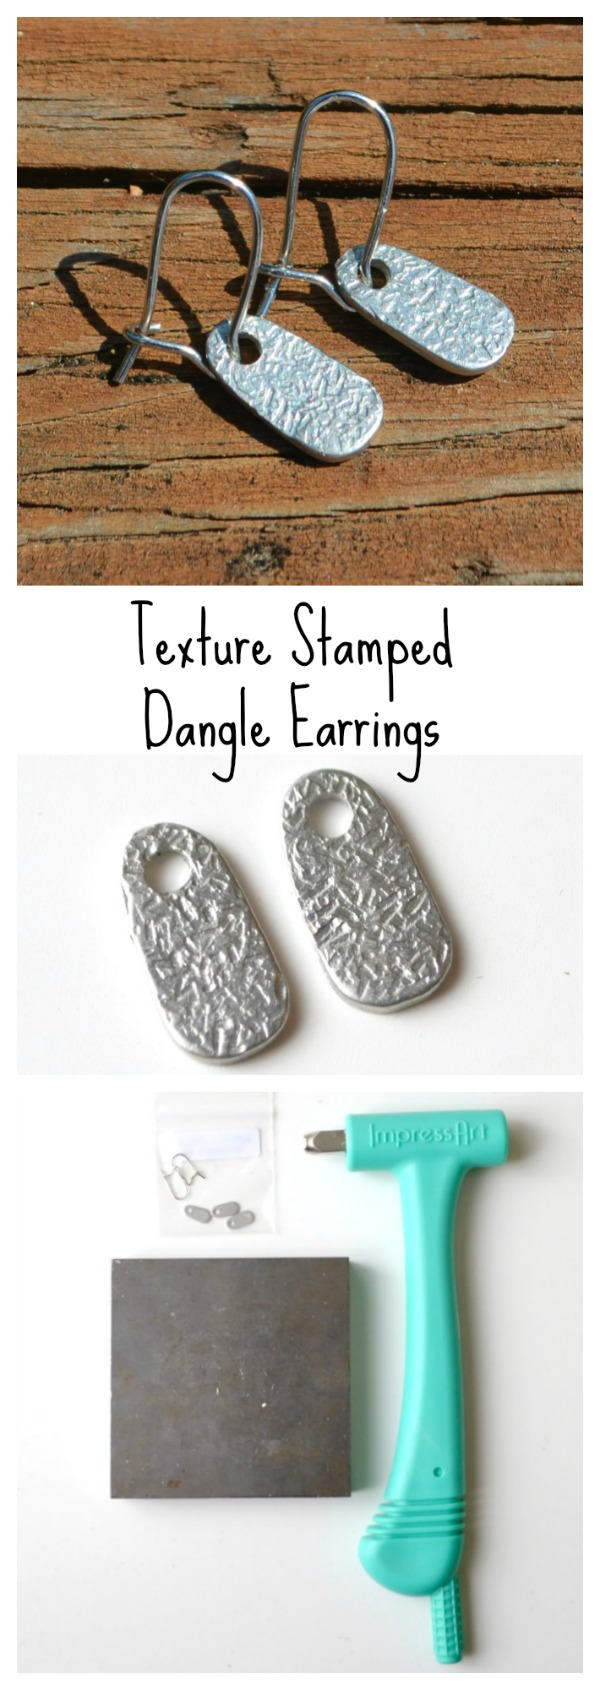 Texture Stamped Dangle Earrings with ImpressArt